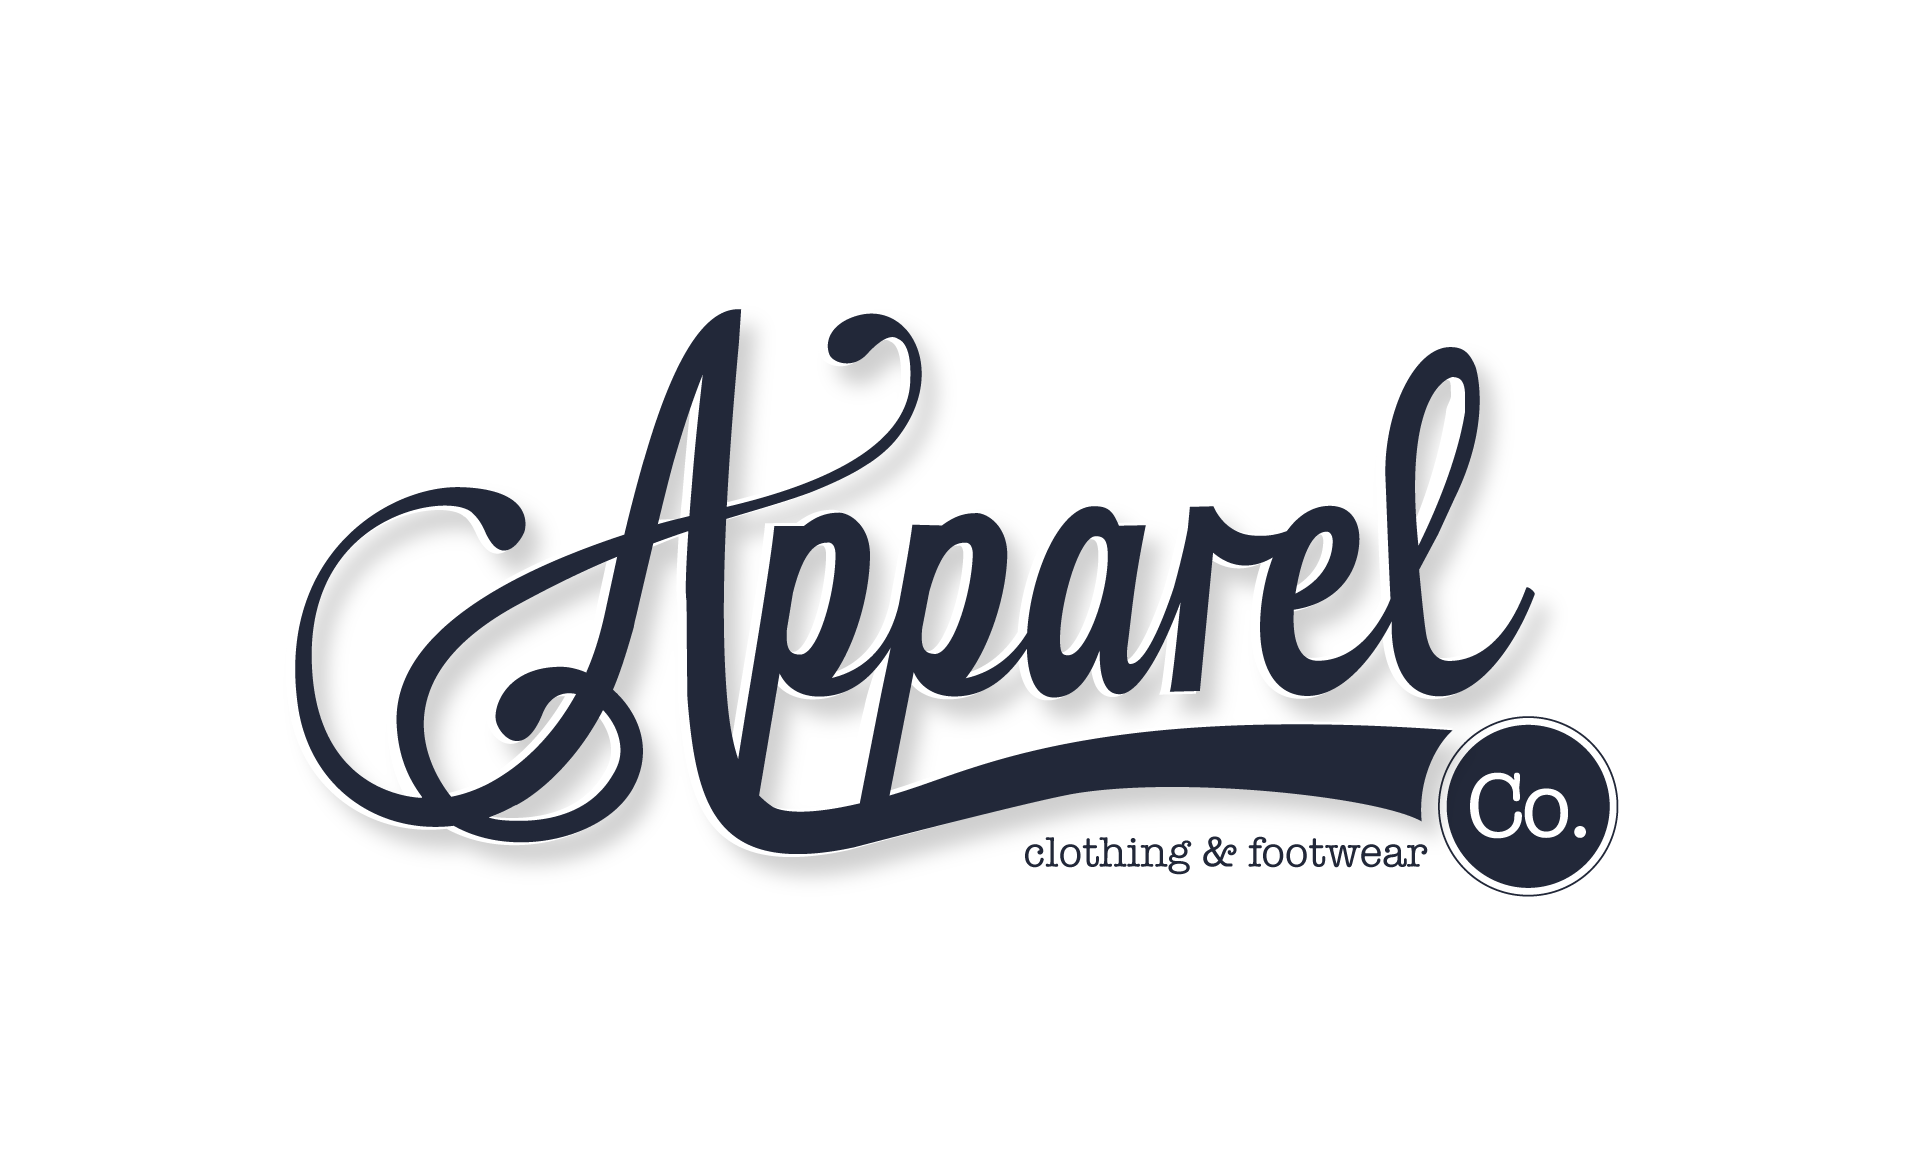 Apparel Co. logo design